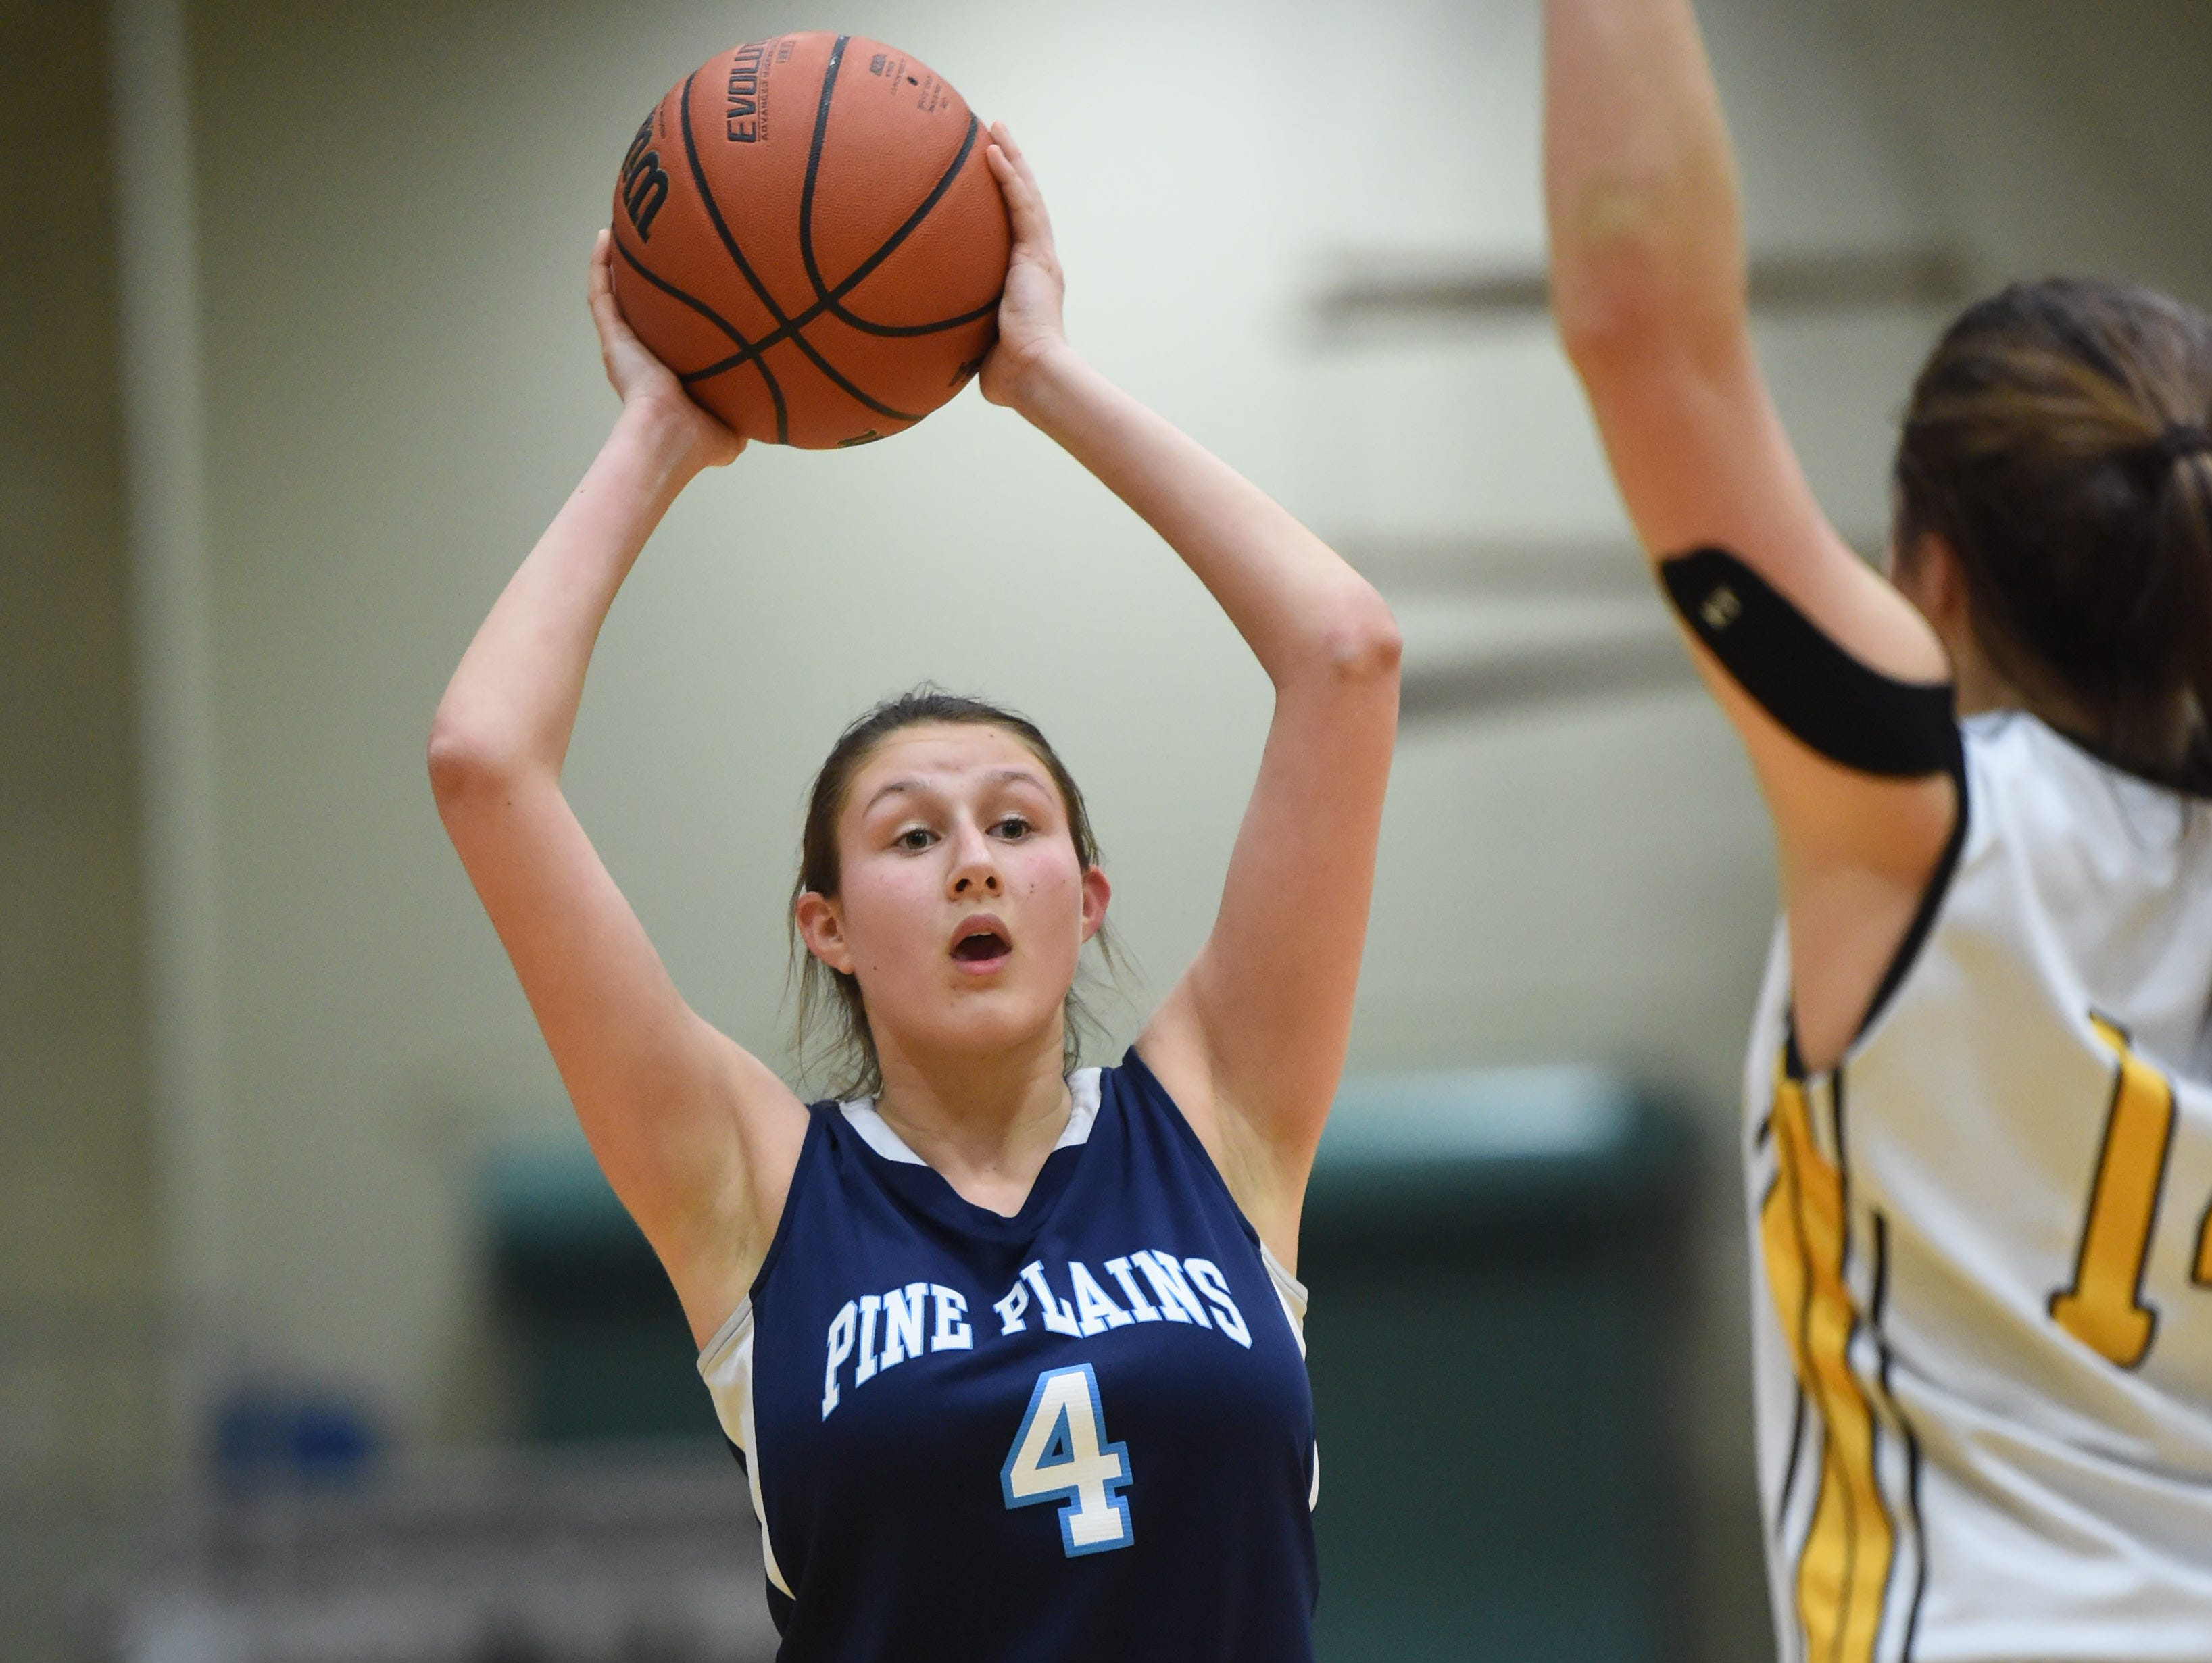 Pine Plains' Tia Fumasoli looks to pass the ball away from South Seneca's Skylar Shaulis during the Class C New York State Championship game at Hudson Valley Community College in Troy on March 13.